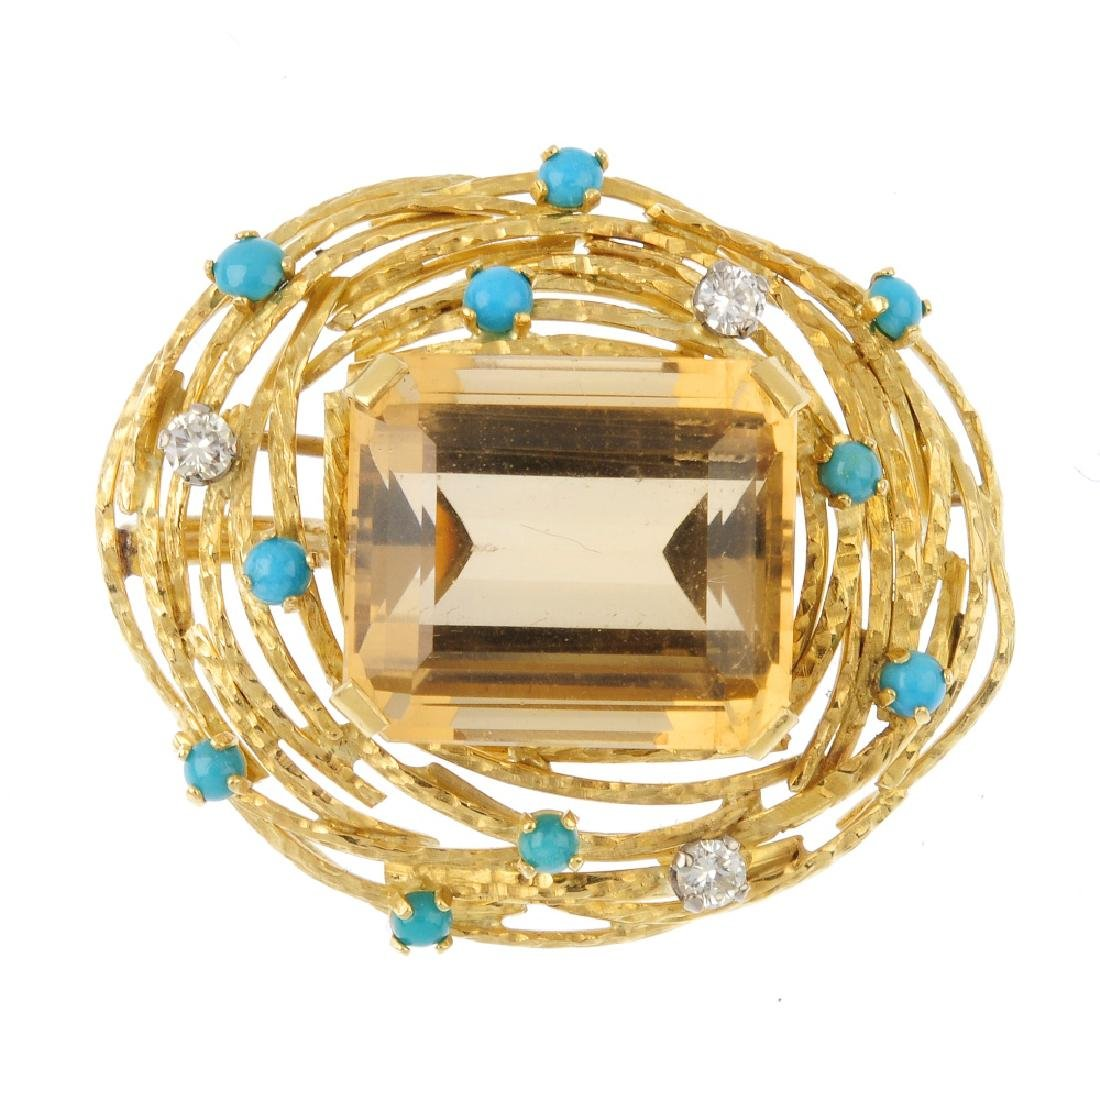 A 1970s citrine, diamond and turquoise pendant. The